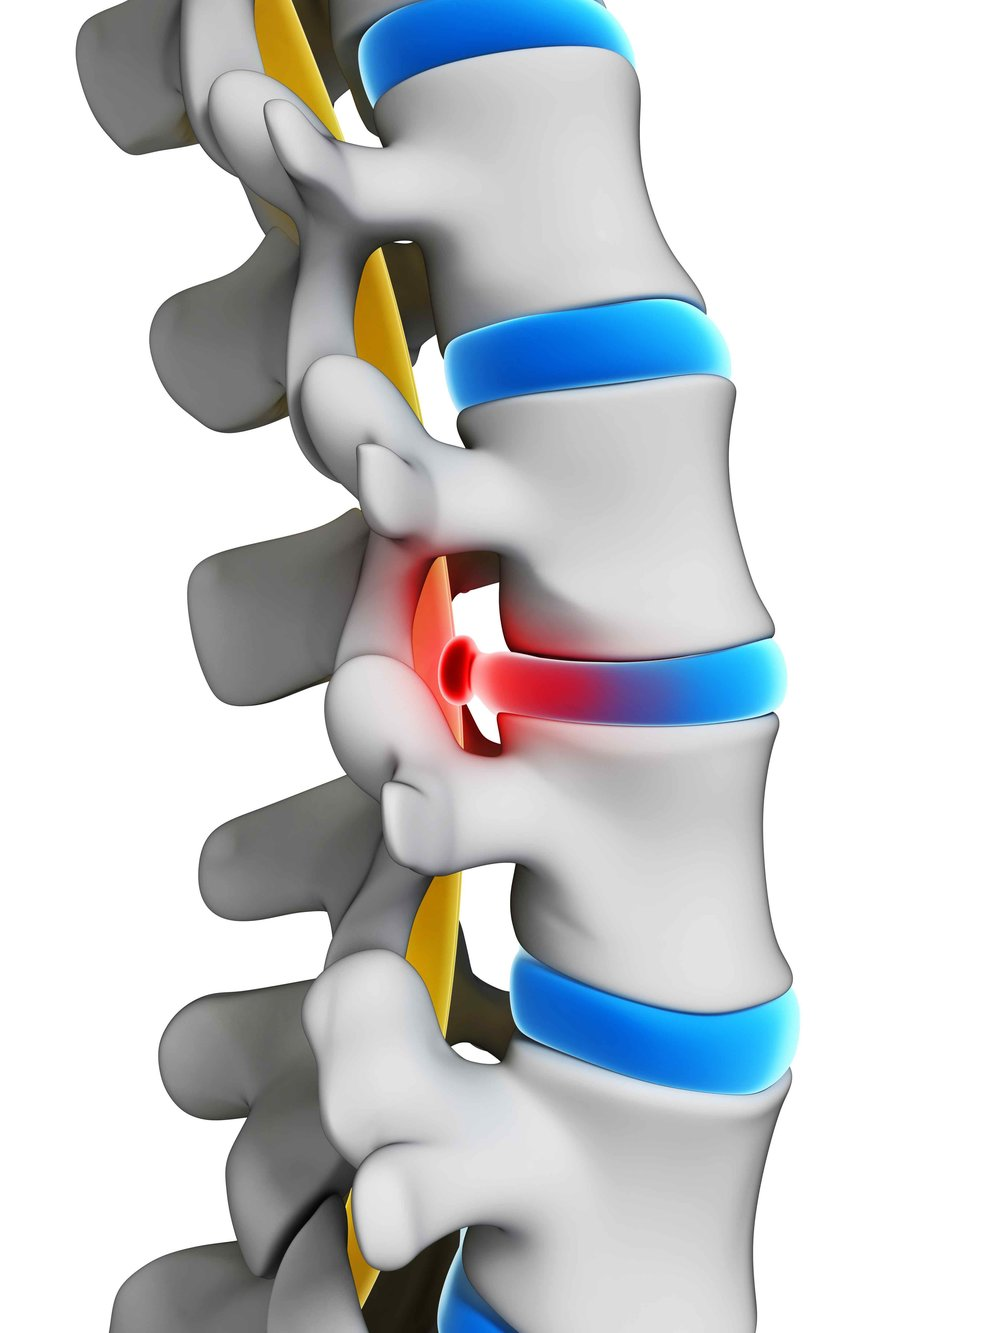 Herniated Disc - Herniated or ruptured discscan occur when the rubbery discs between the spinal bones (vertebrae) become compressed and bulge outward or rupture (herniation), causing back pain, leg pain and sciatica.This condition is commonly treated with Epidural Steroid Injection (ESI). In certain severe cases, part of the disc may need to be cut-out, a procedure known as Discectomy.